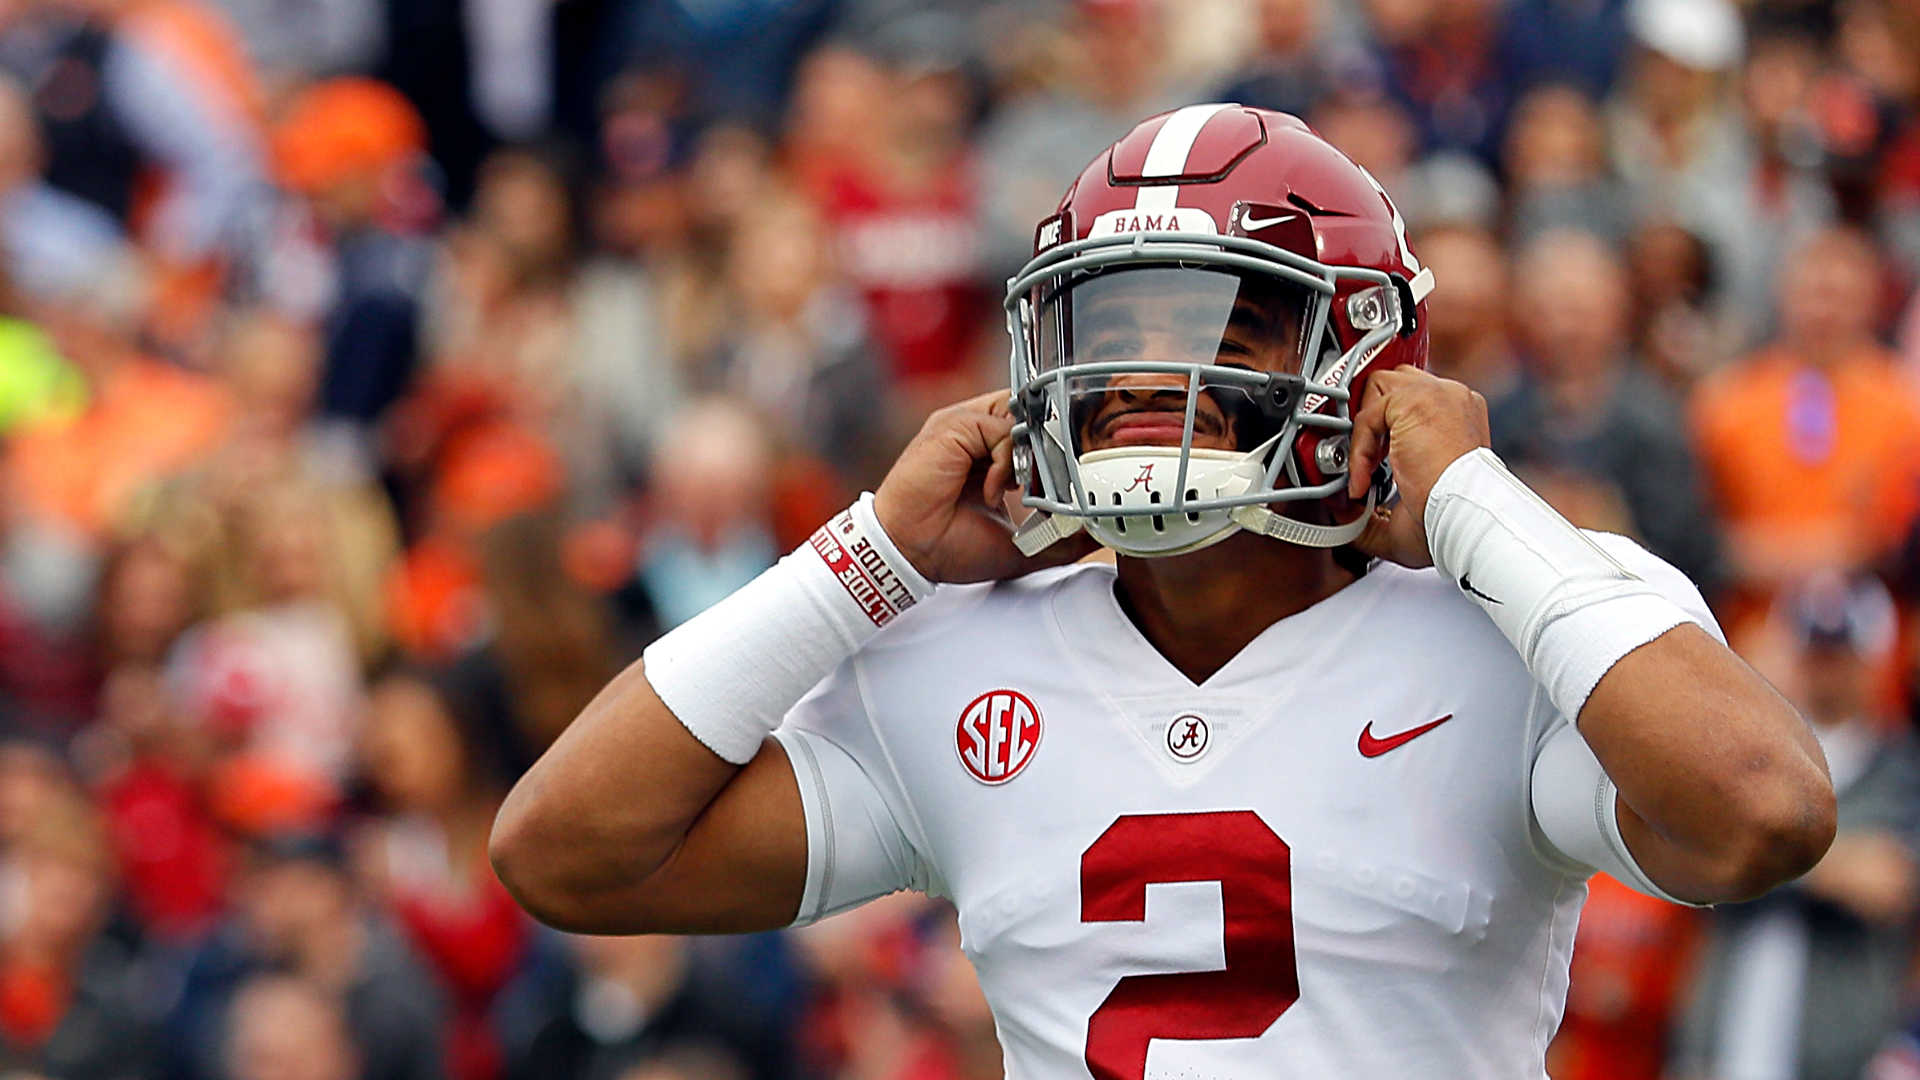 Alabama's Jalen Hurts pays up for Charles Barkley bet